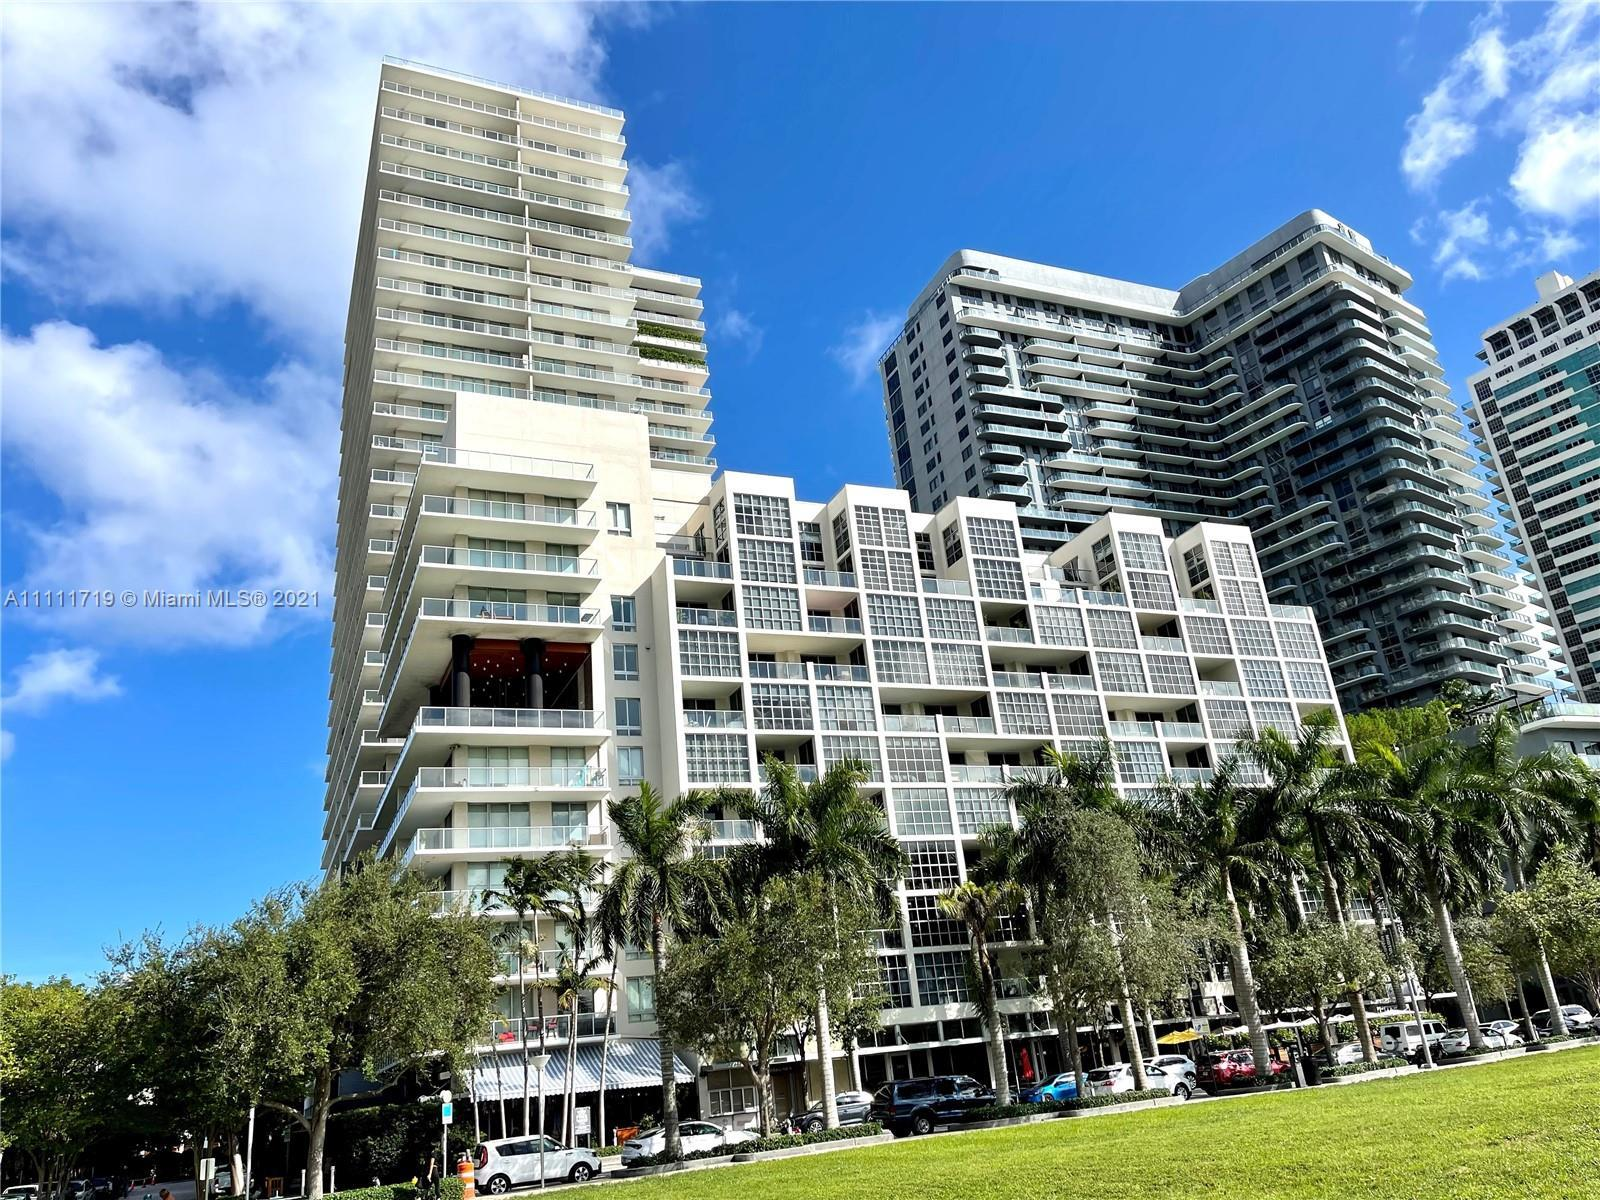 Fantastic views of Edgewater and Miami. Located in the intersection of Wynwood, Design District and